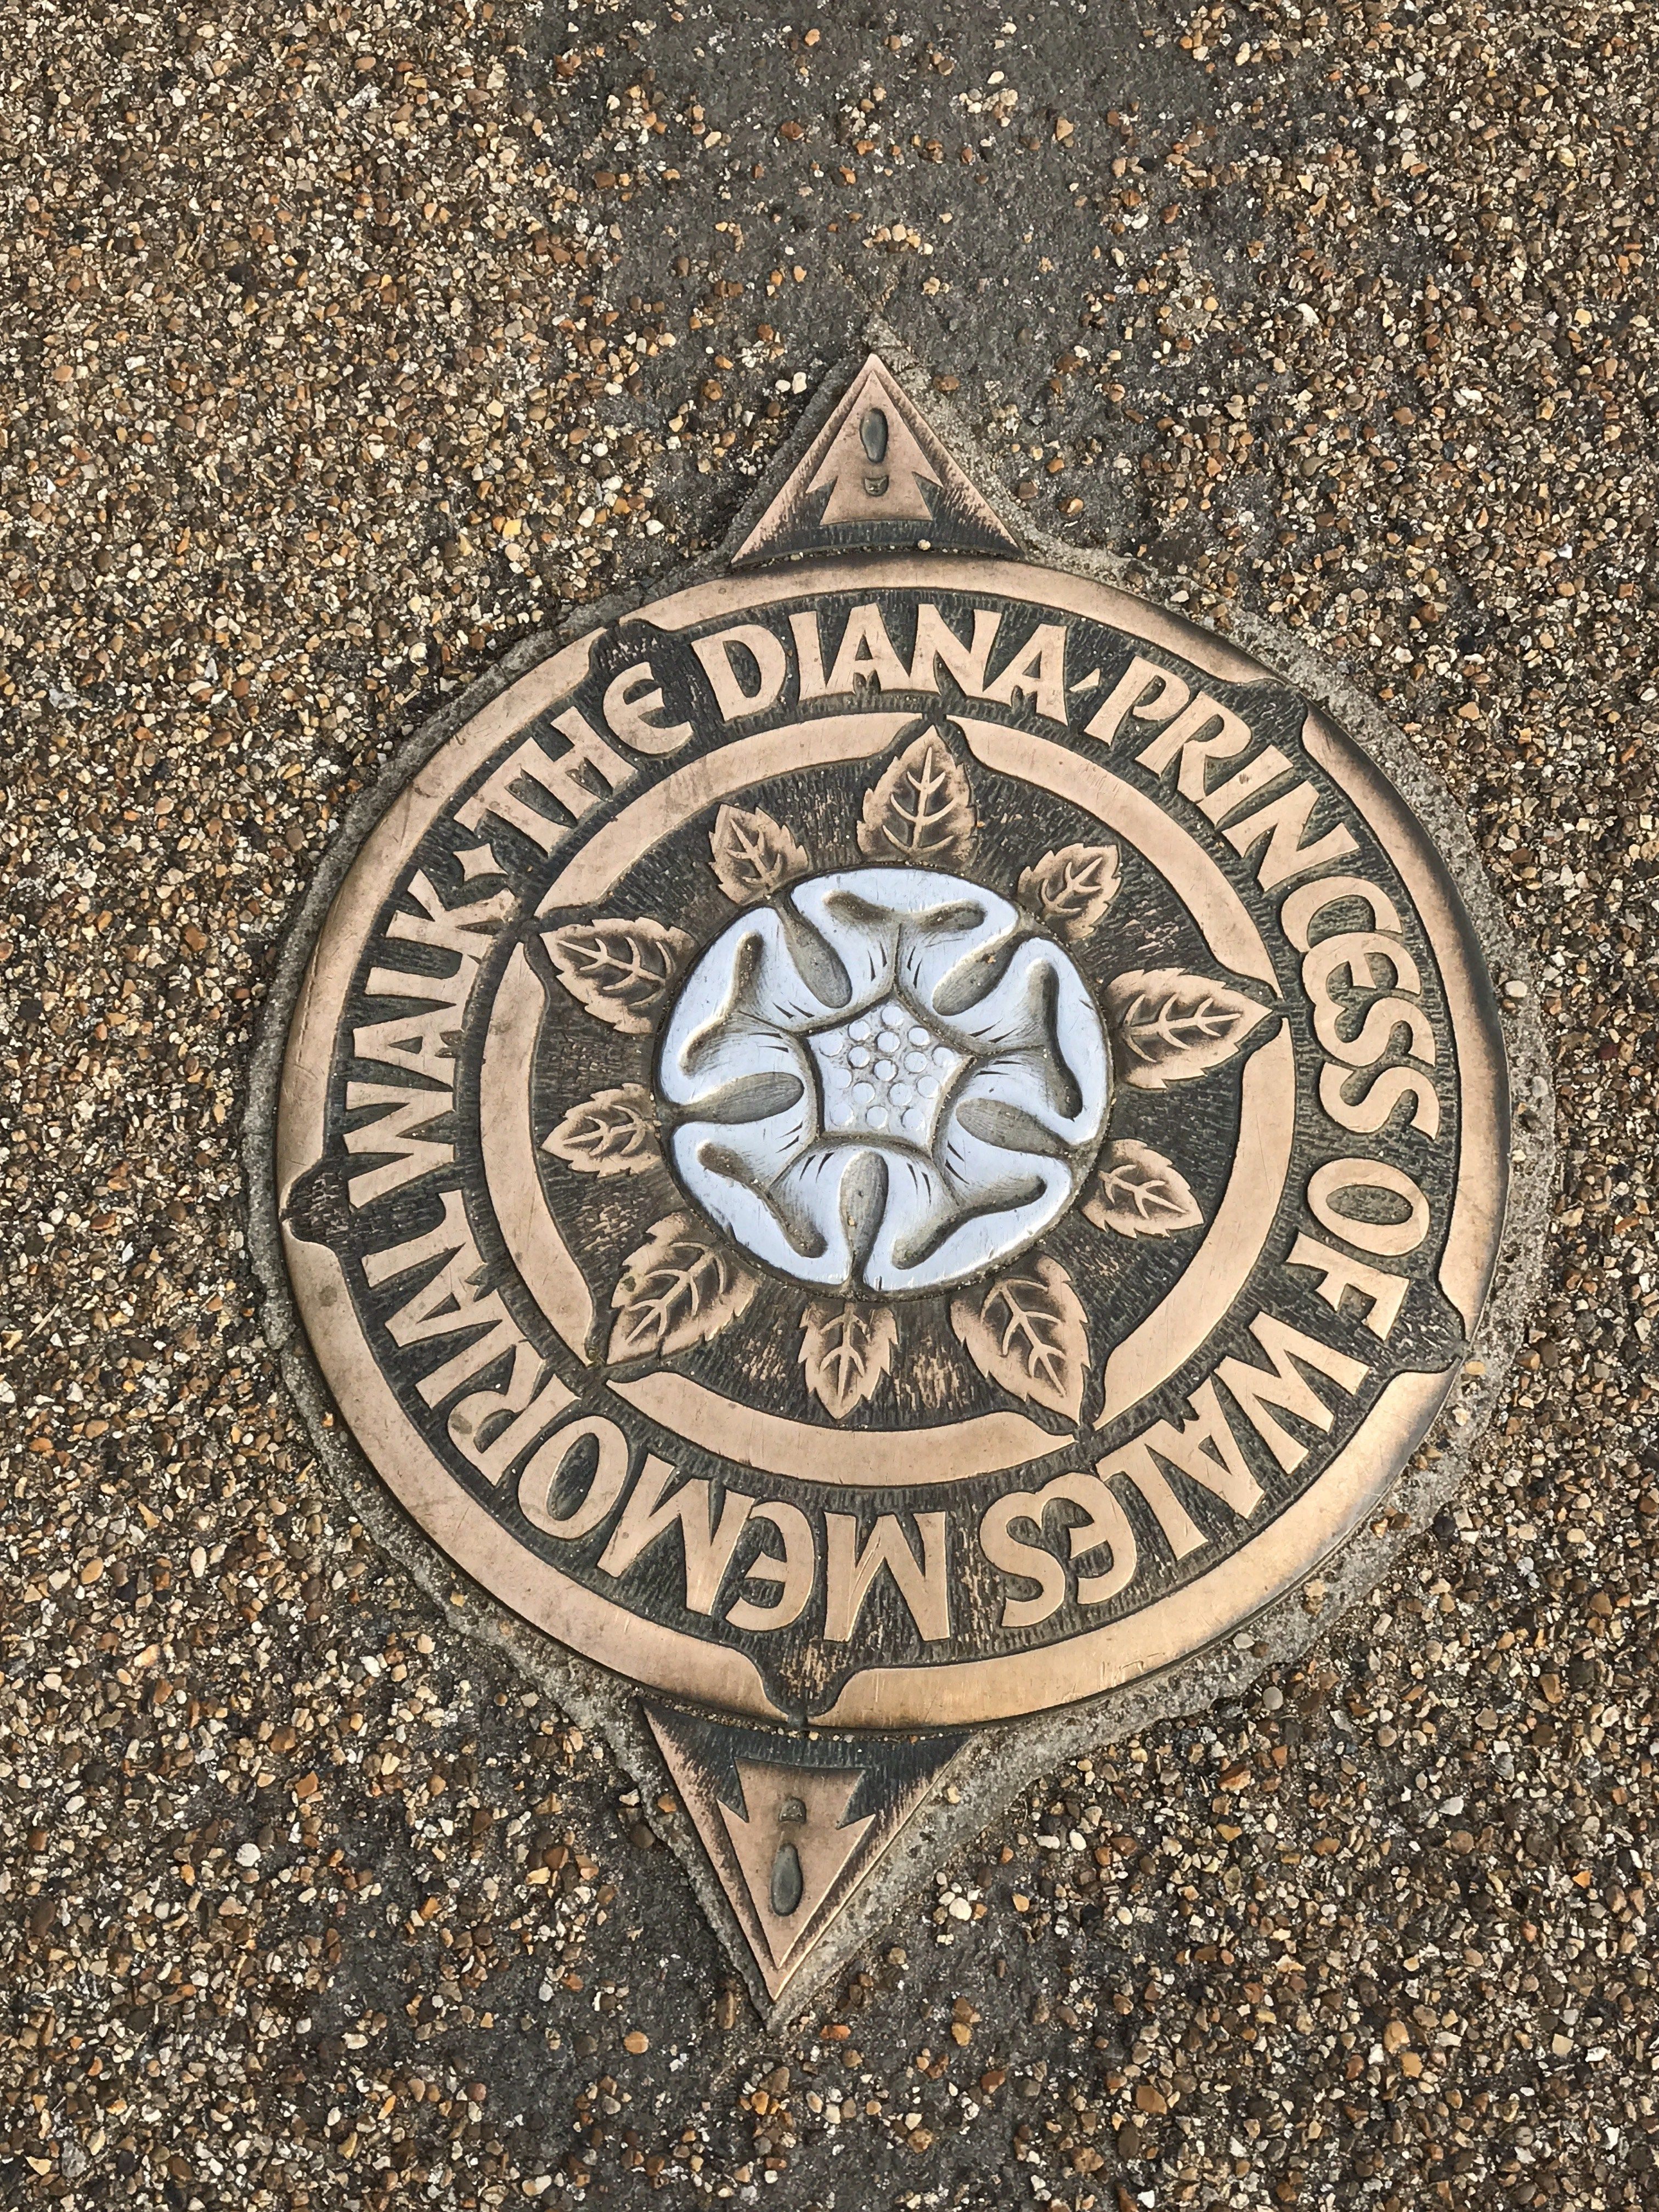 London England A Right Royal Time Walks In London Diana Memorial Fountain Royal Time